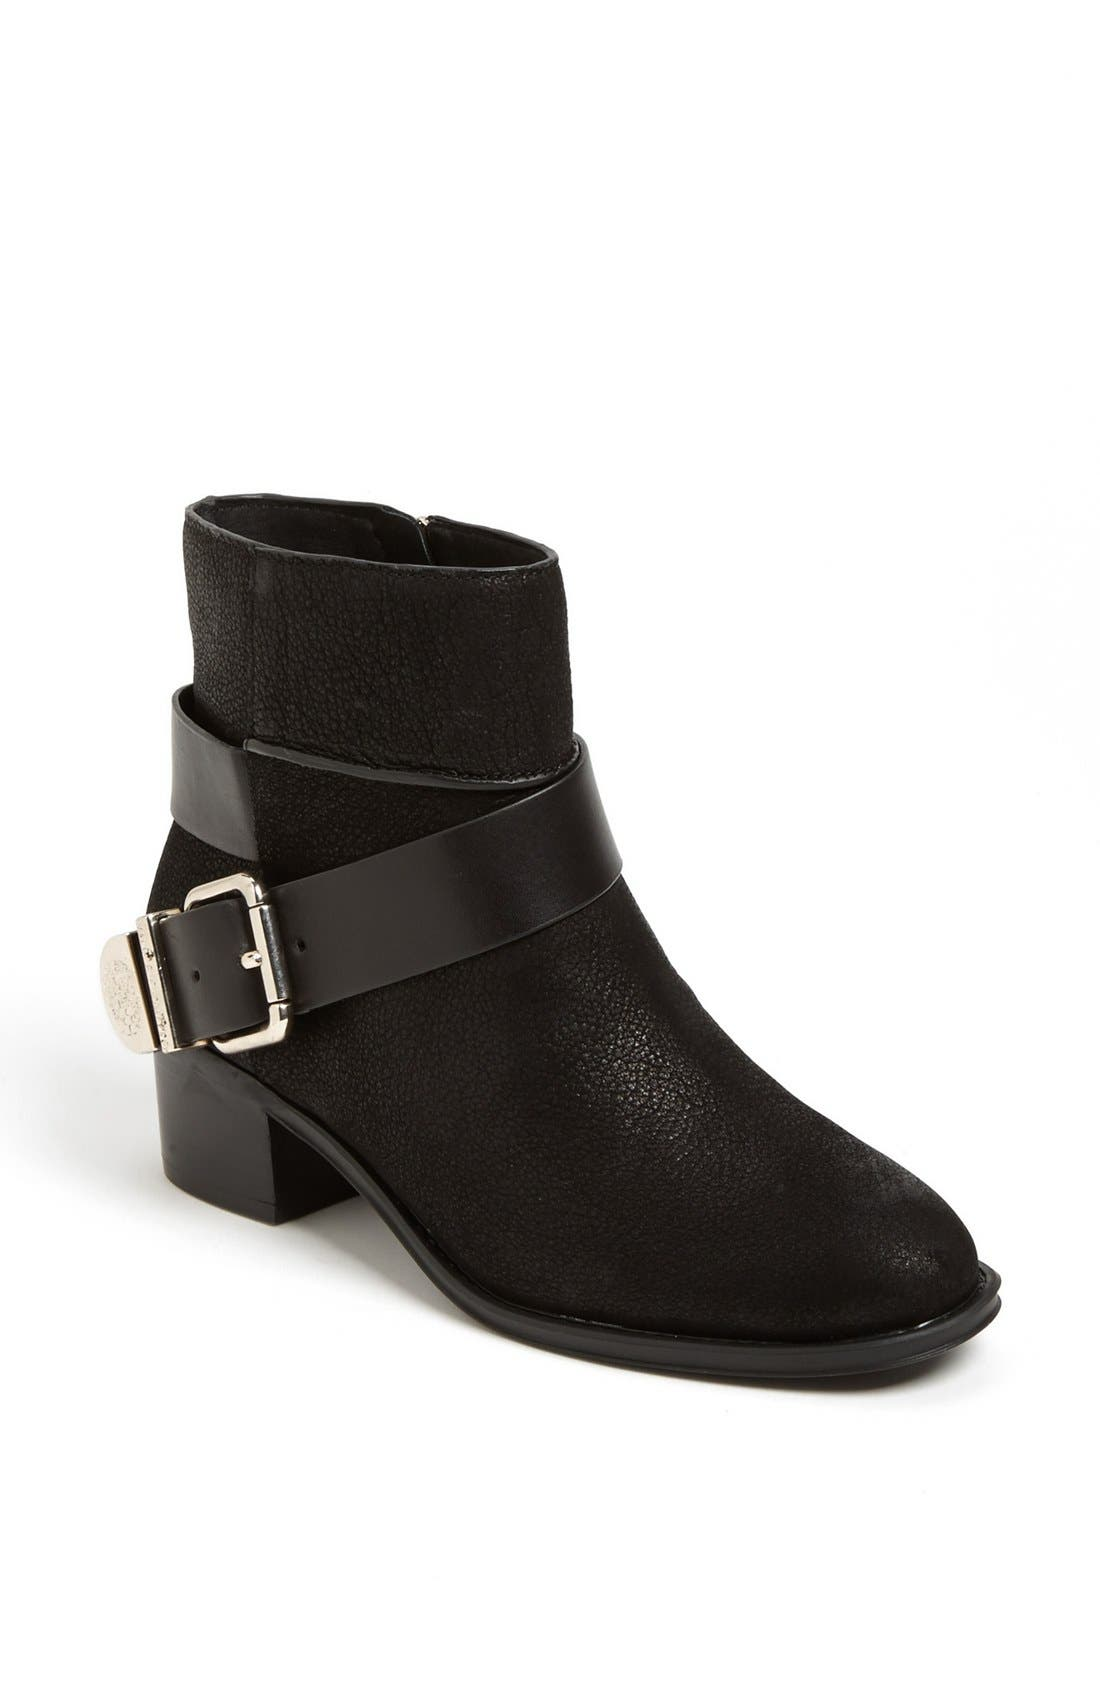 Alternate Image 1 Selected - Vince Camuto 'Romeo' Boot